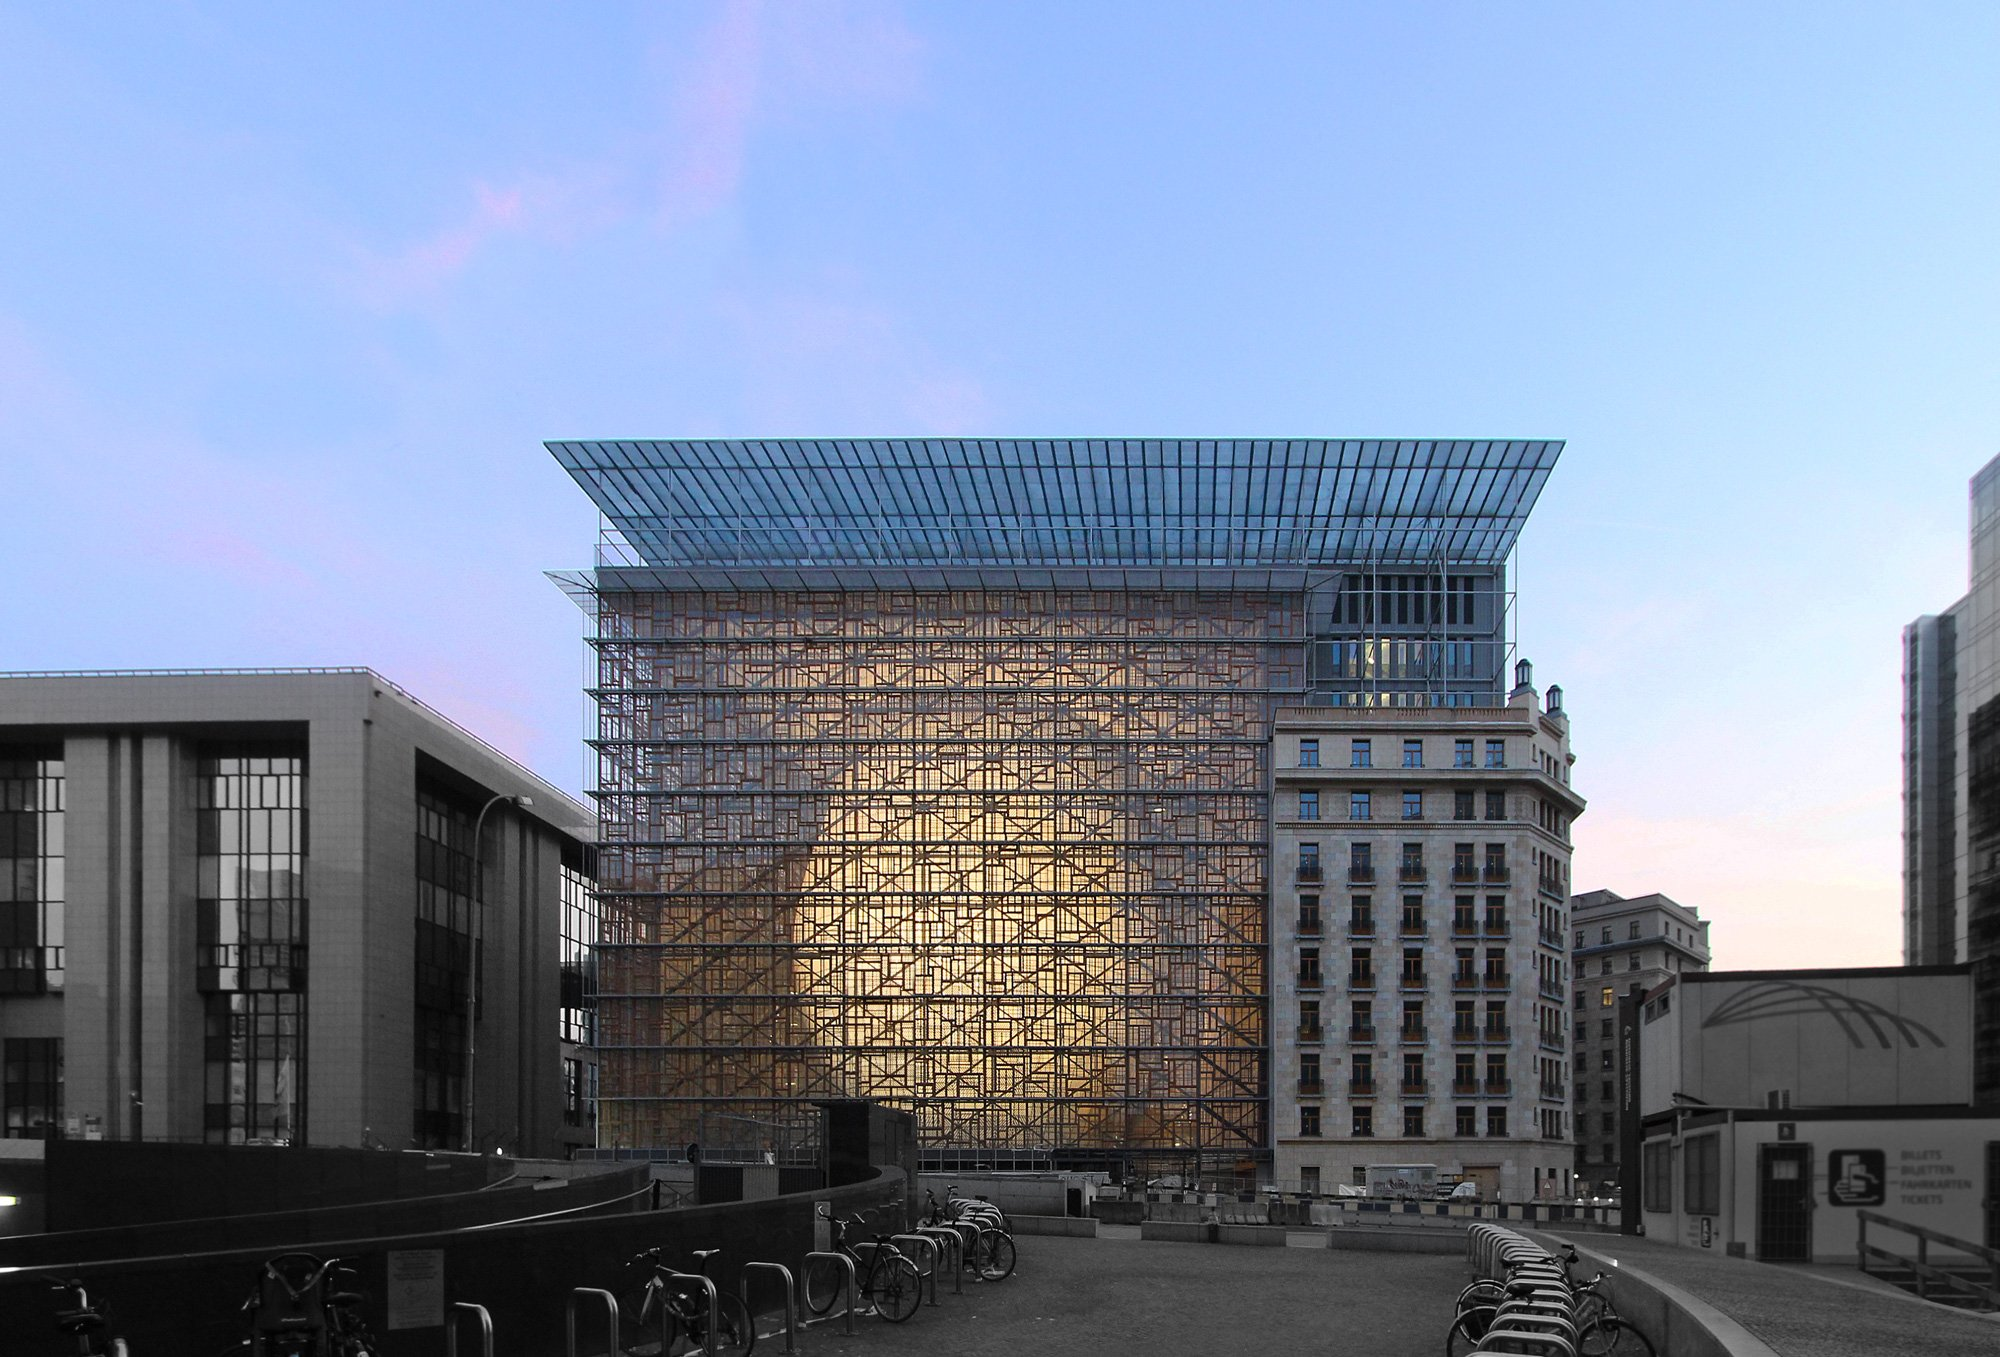 Sede del consiglio Europeo © Philippe Samyn and Partners architects & engineers